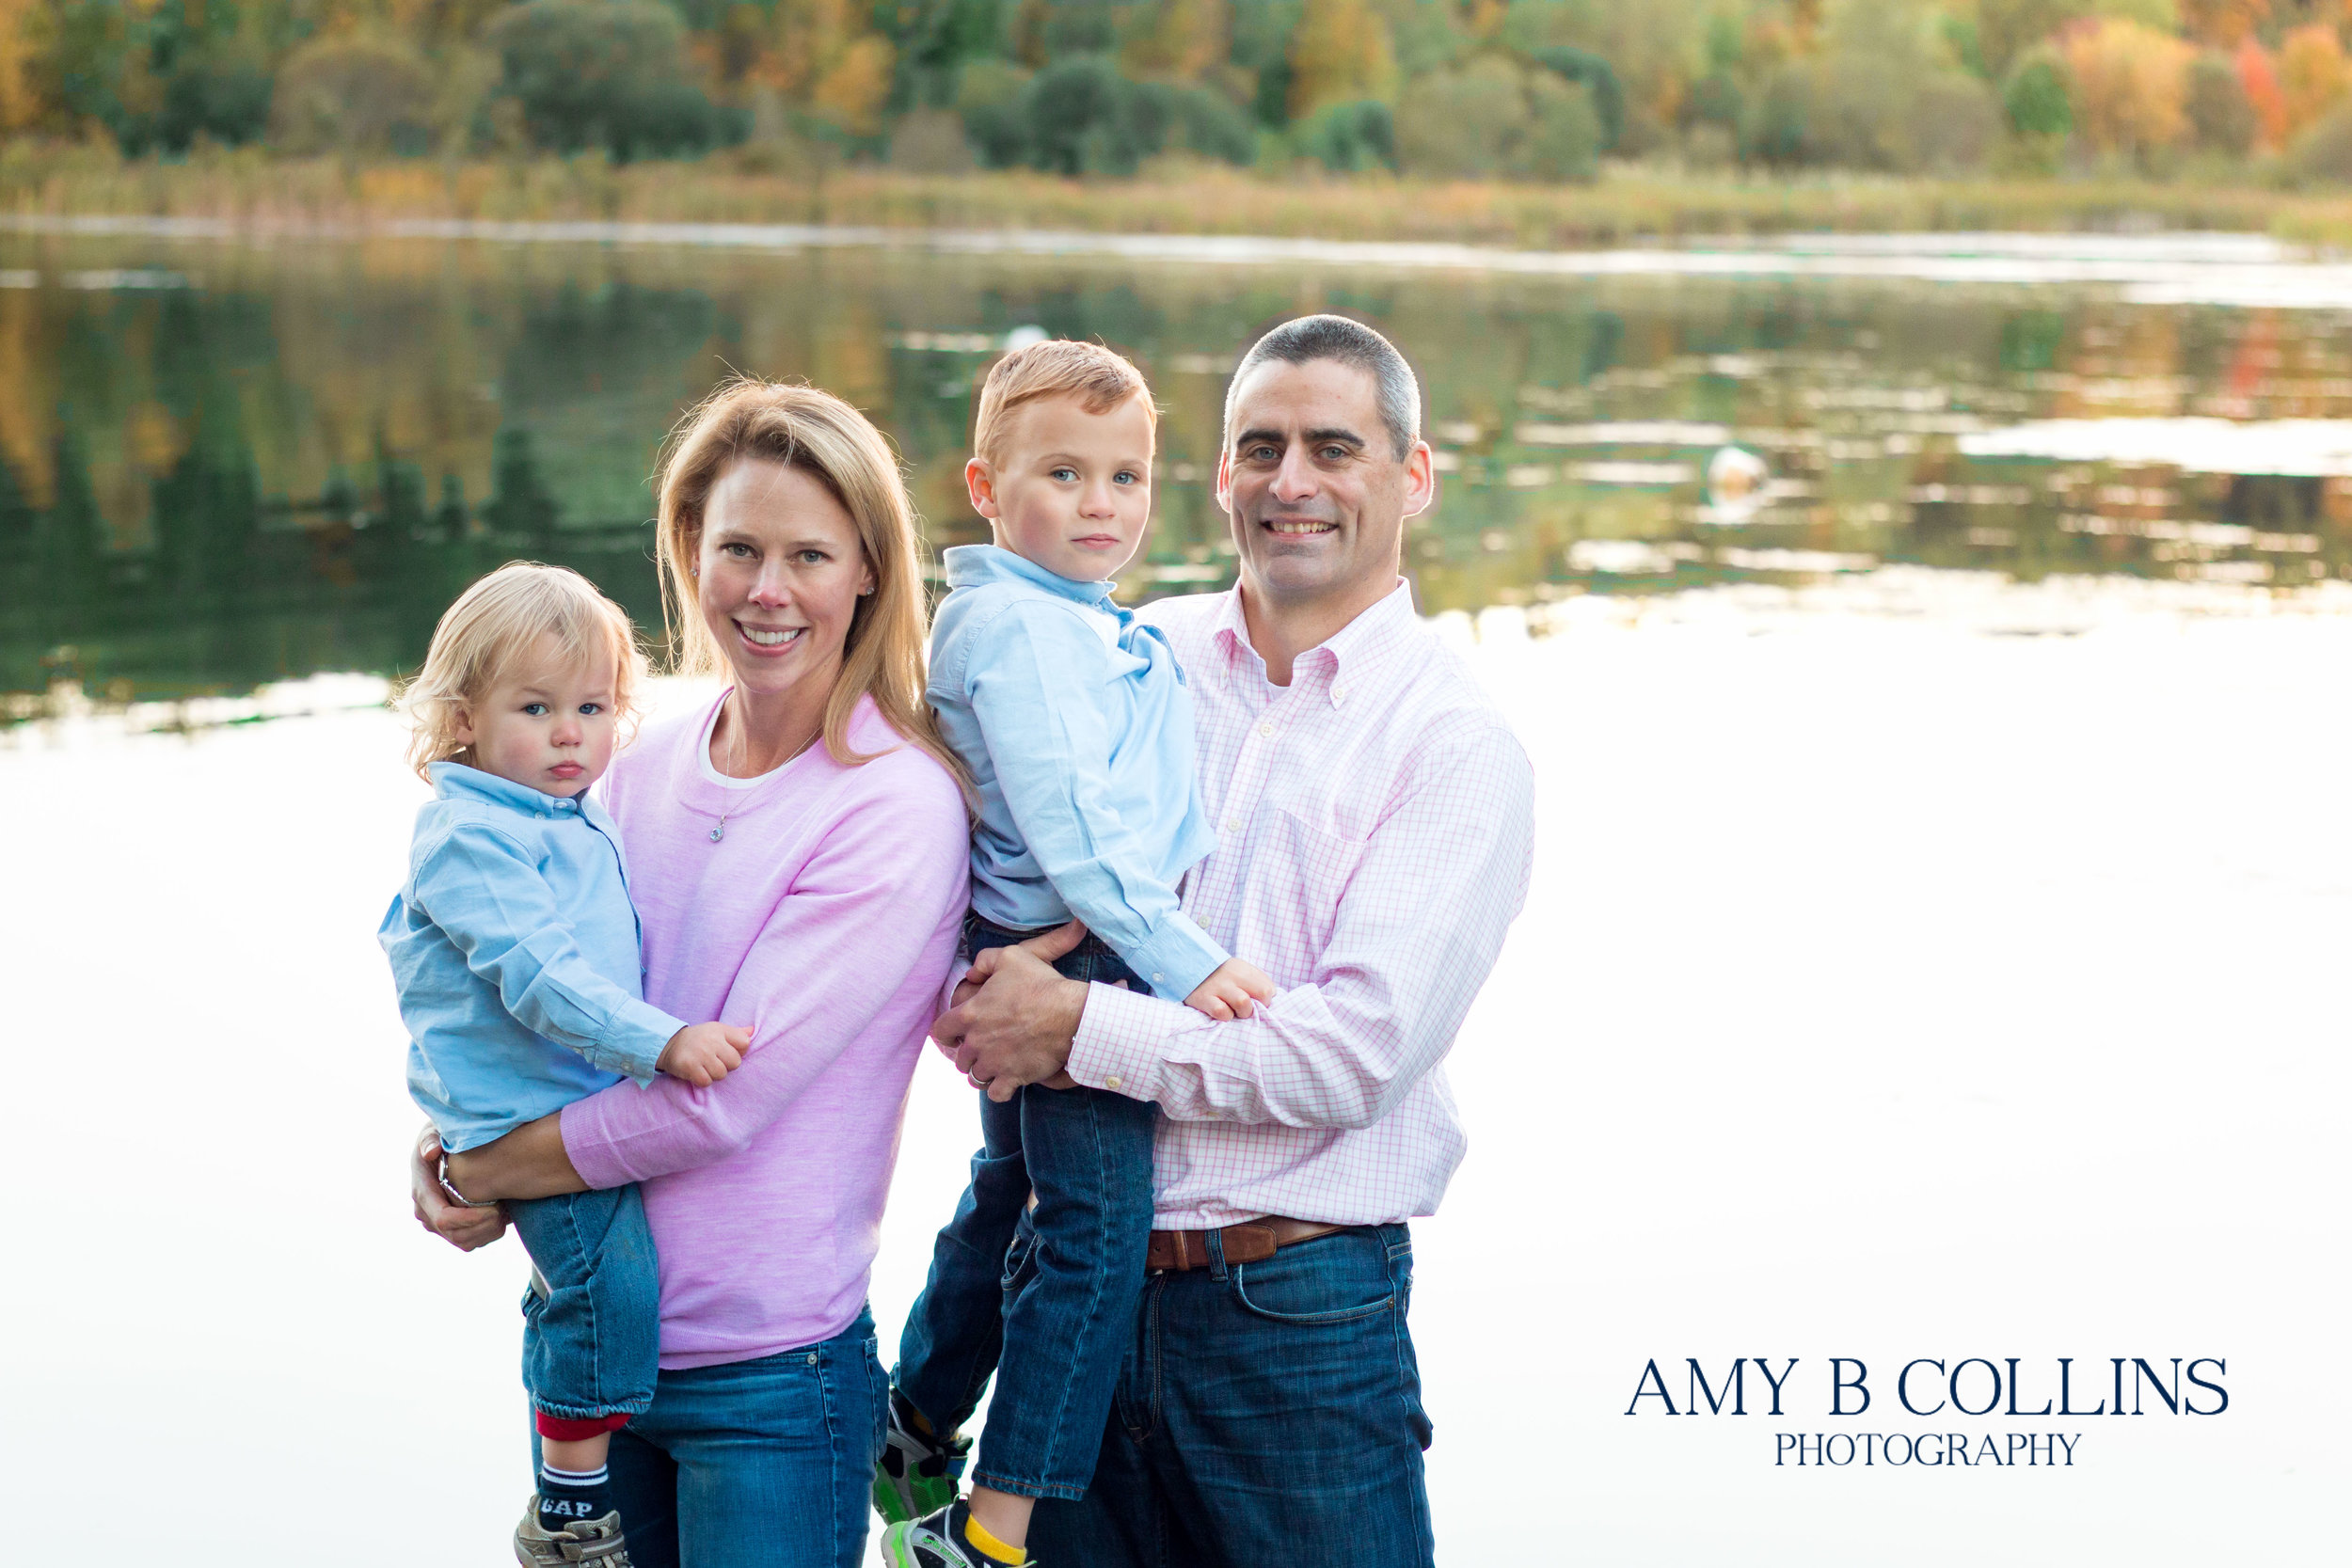 AmyBCollinsPhotography_FamilySession_H-18.jpg